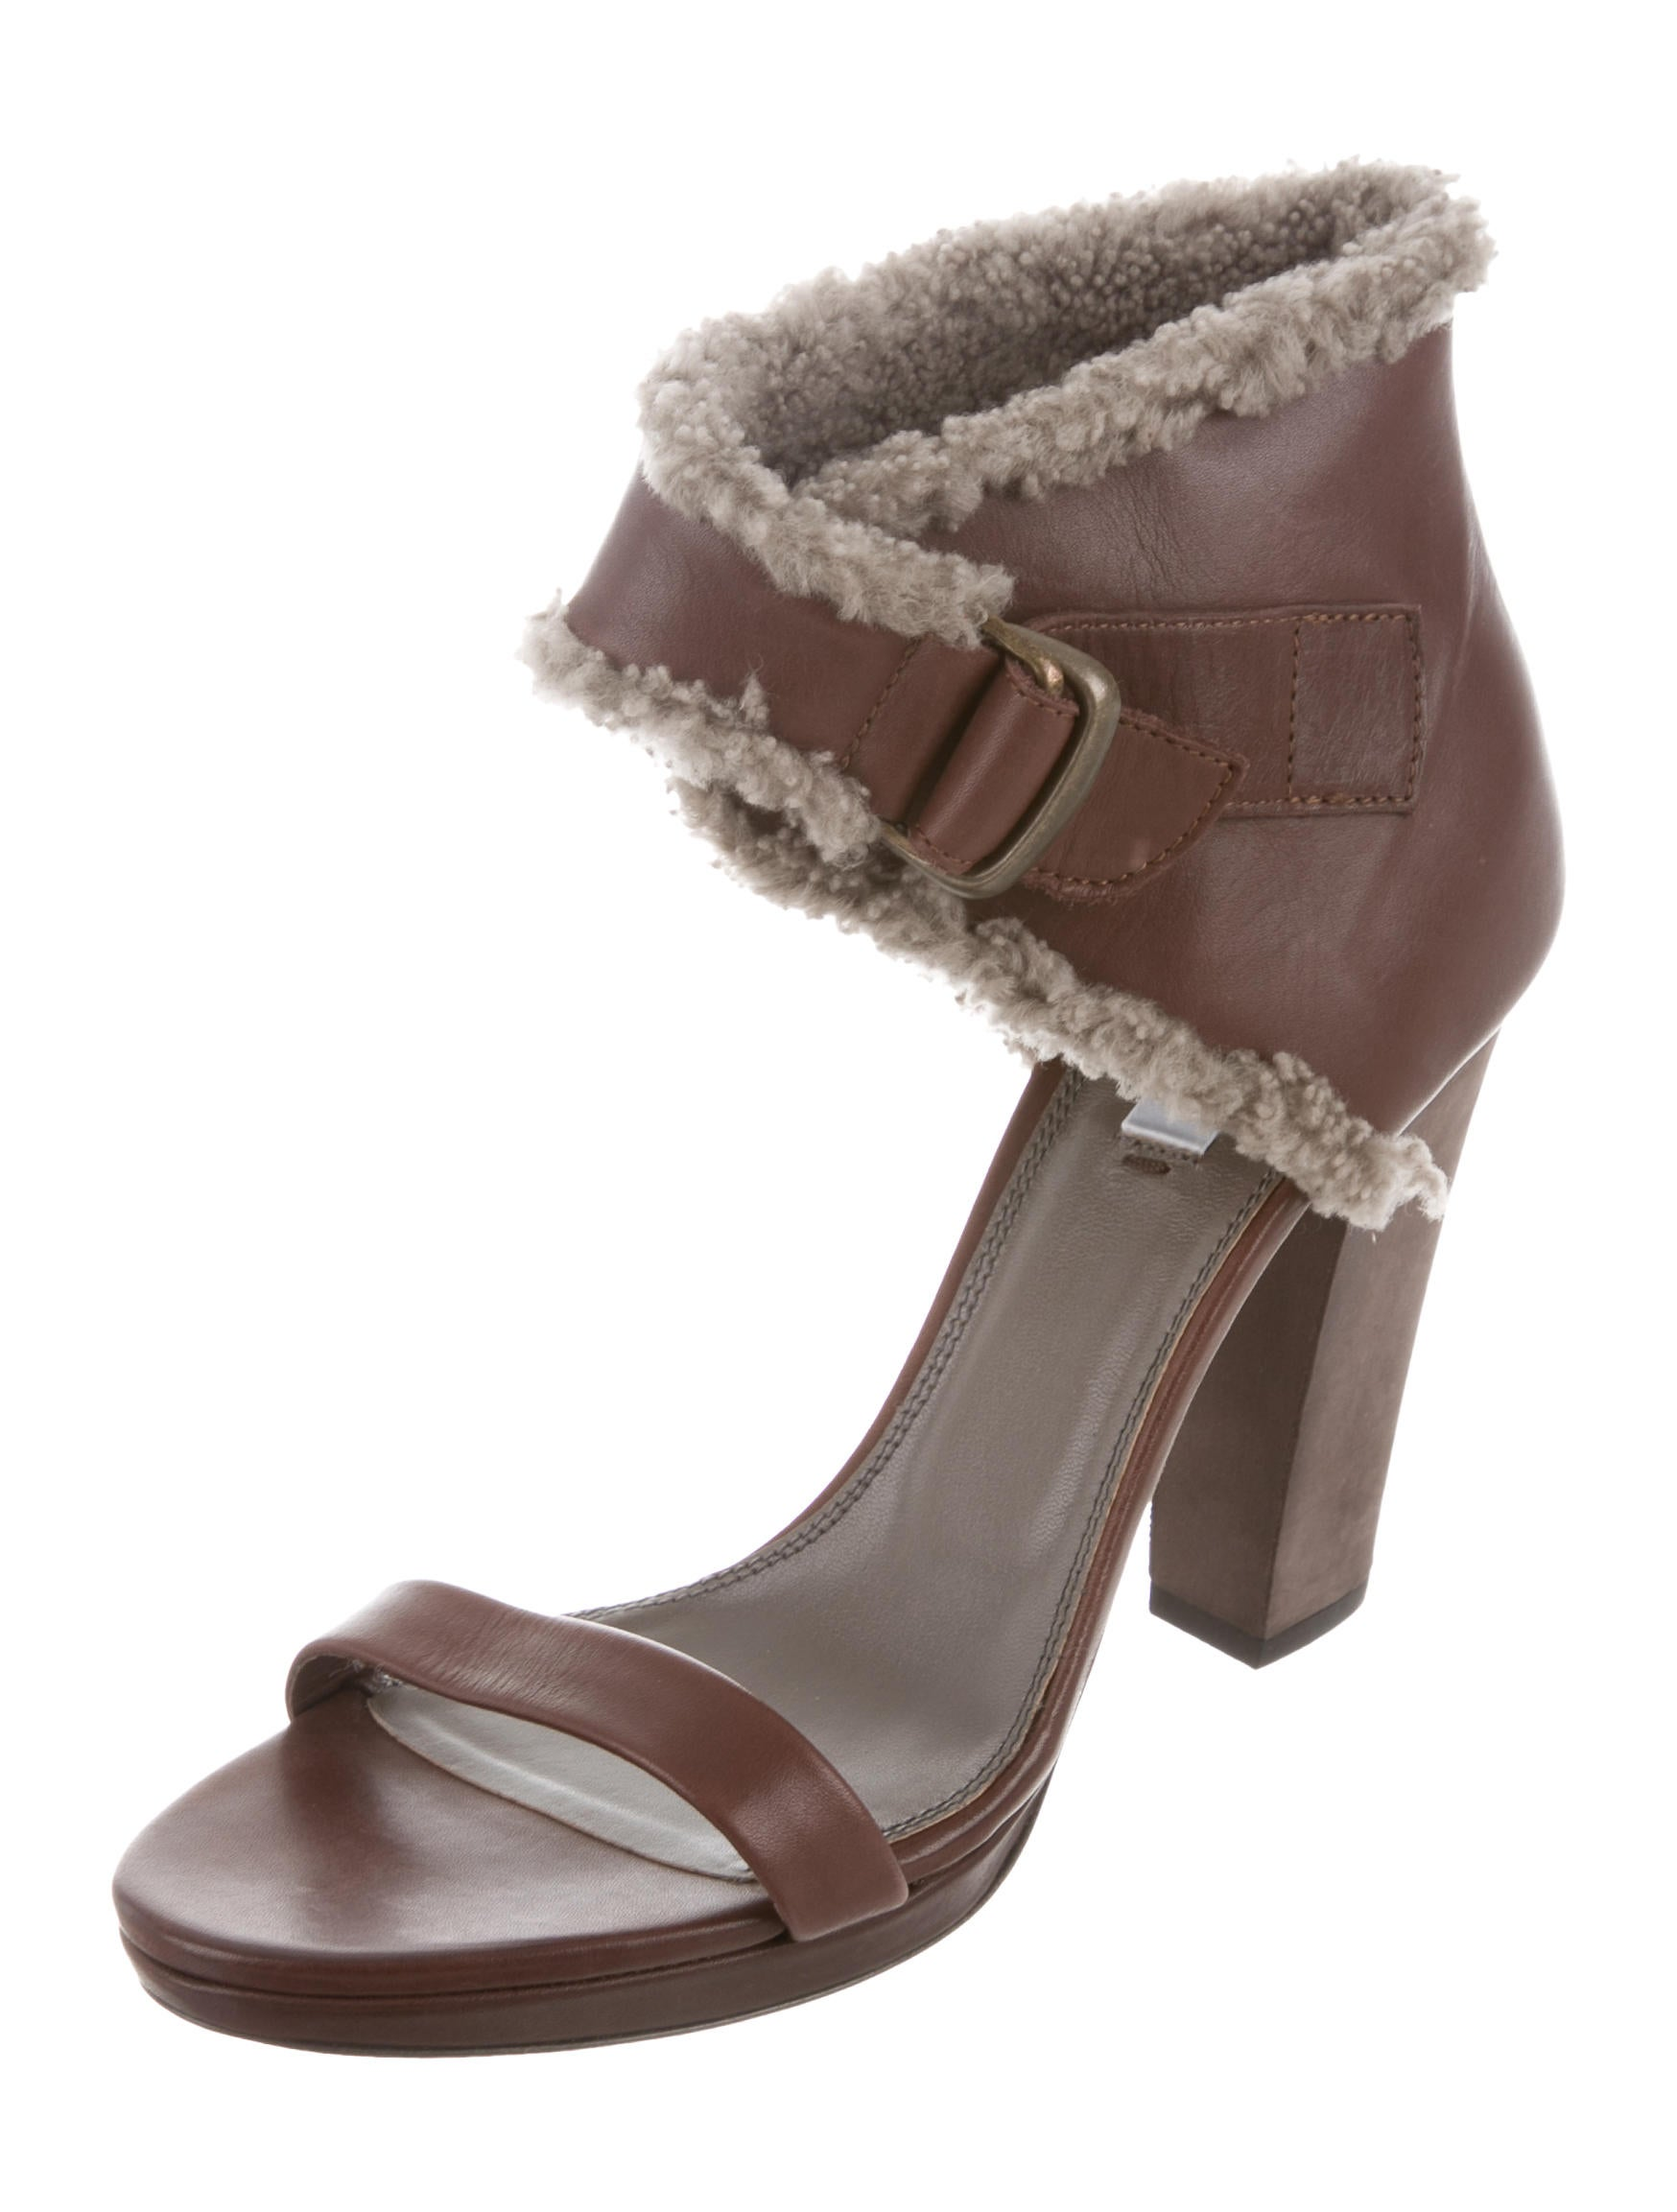 free shipping amazon Brunello Cucinelli Shearling-Trimmed Ankle Strap Sandals w/ Tags 2014 newest sale online cheap finishline cheap sale best seller clearance under $60 ZZoc2